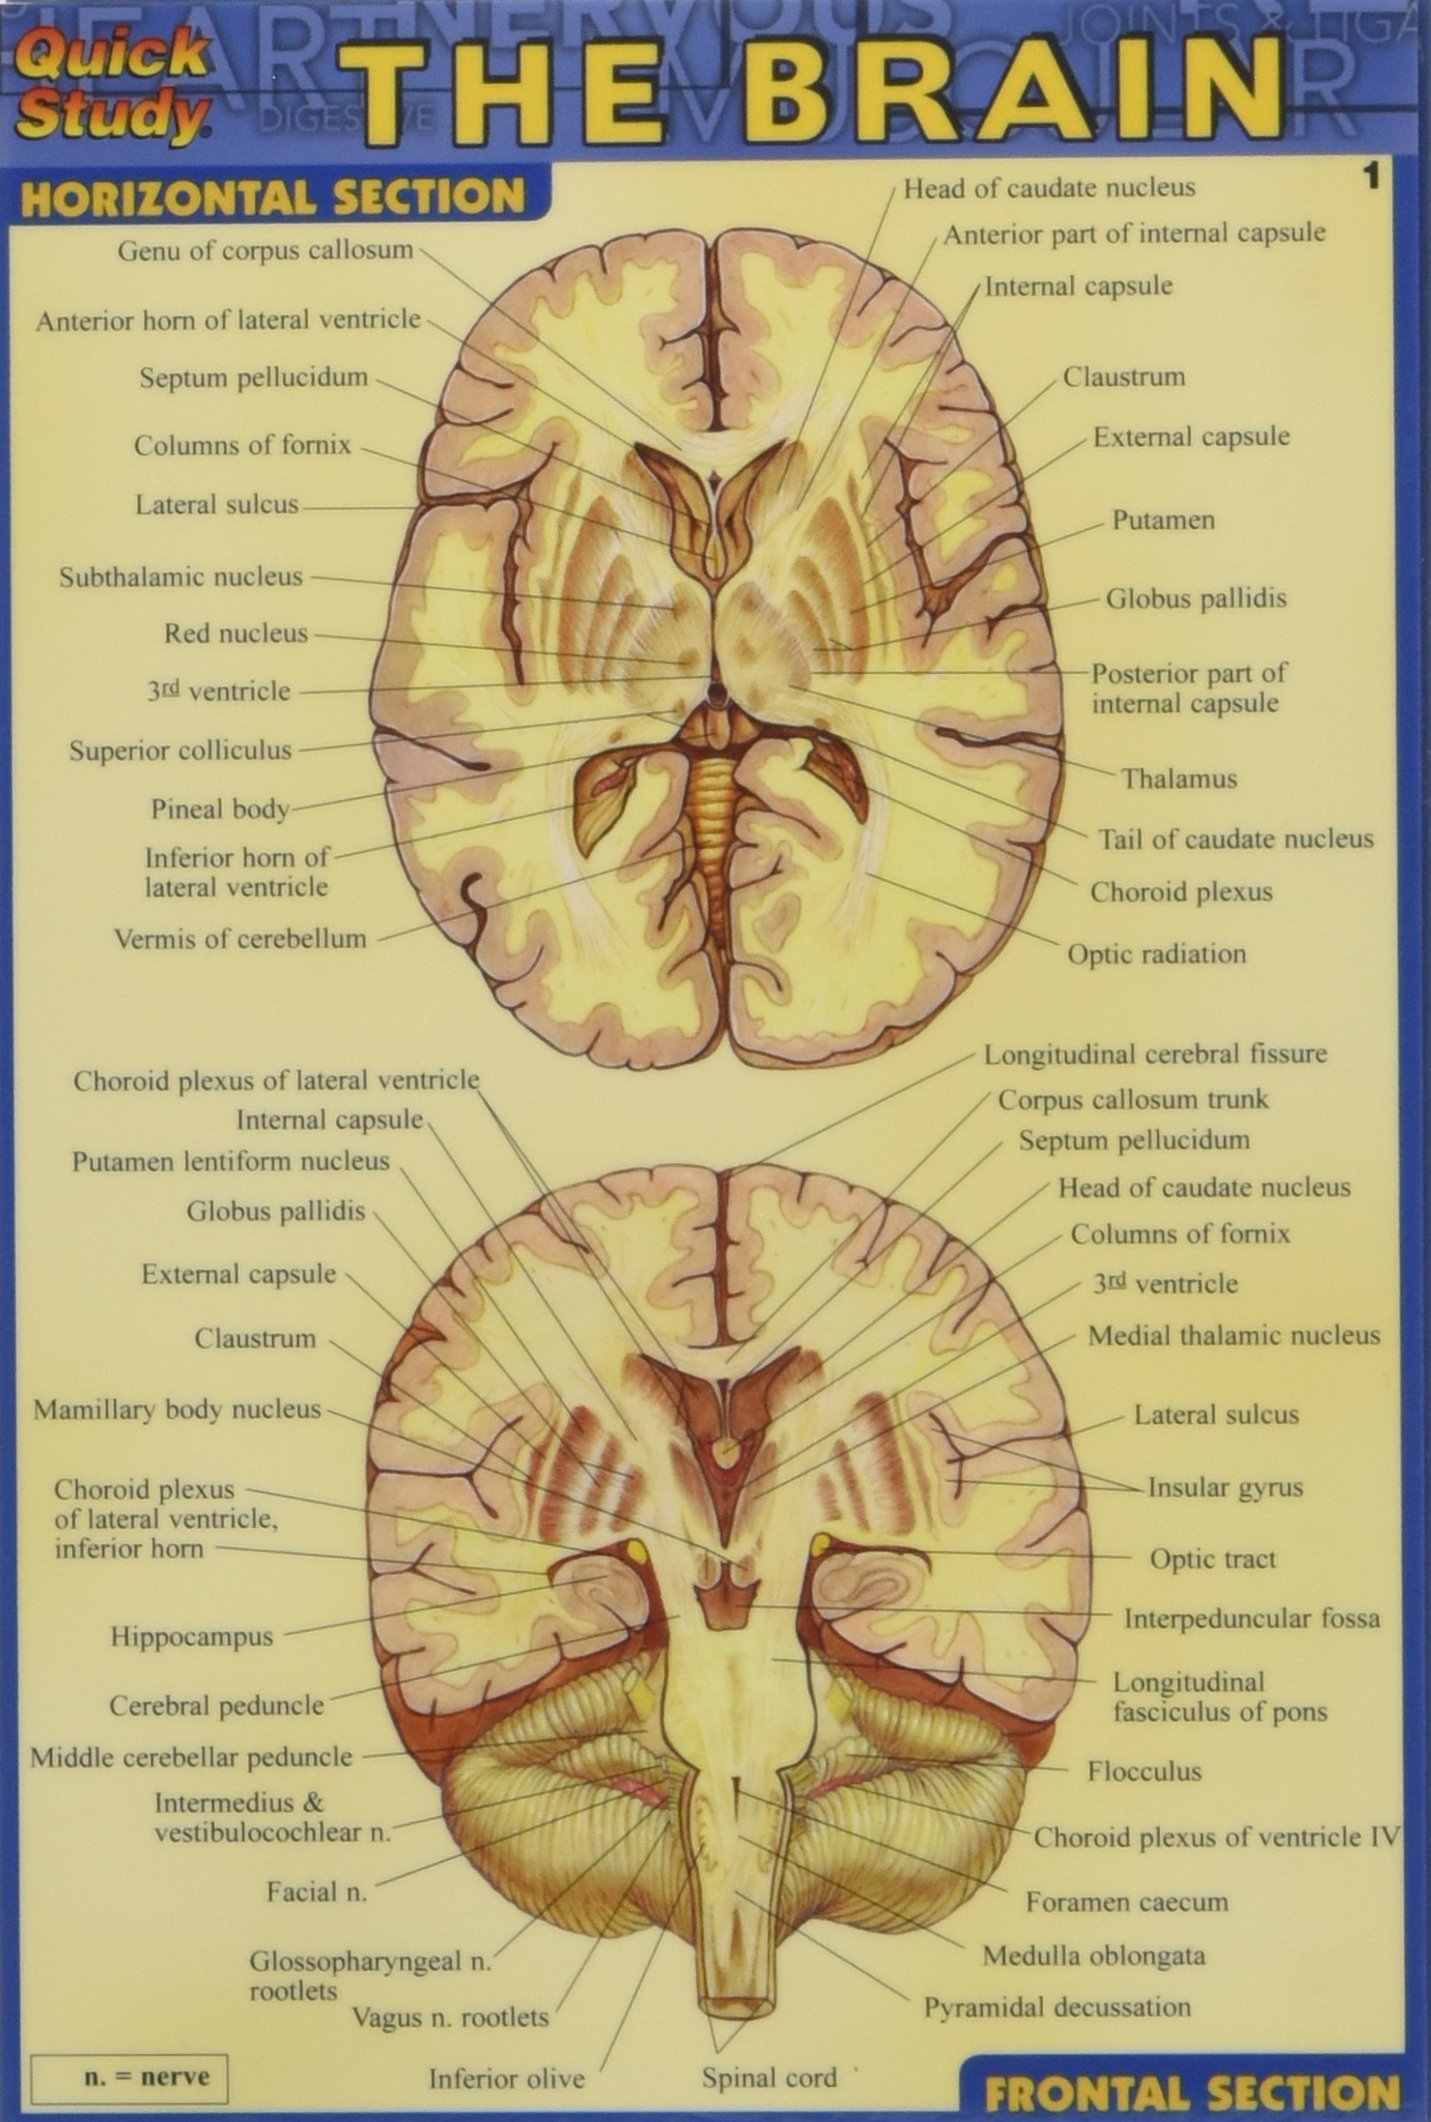 Buy Brain (Quick Study) Book Online at Low Prices in India | Brain ...